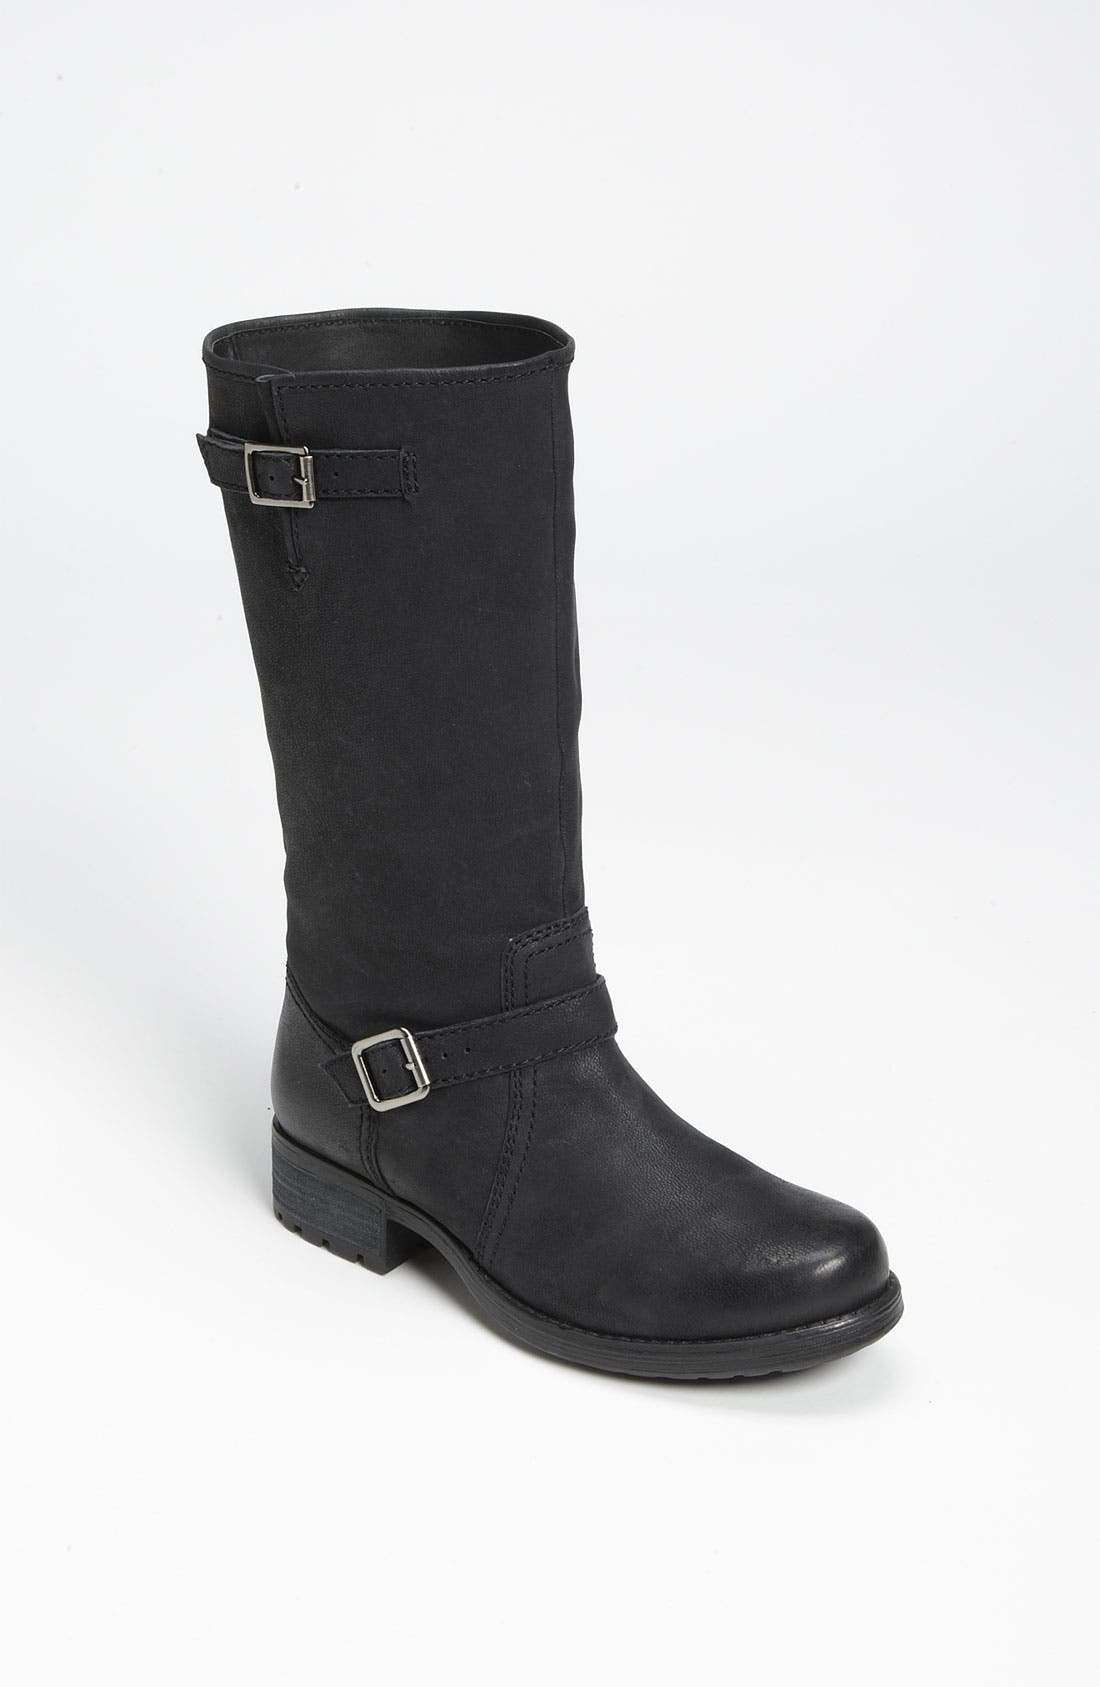 Main Image - 7 For All Mankind® 'Nova' Boot (Online Exclusive)